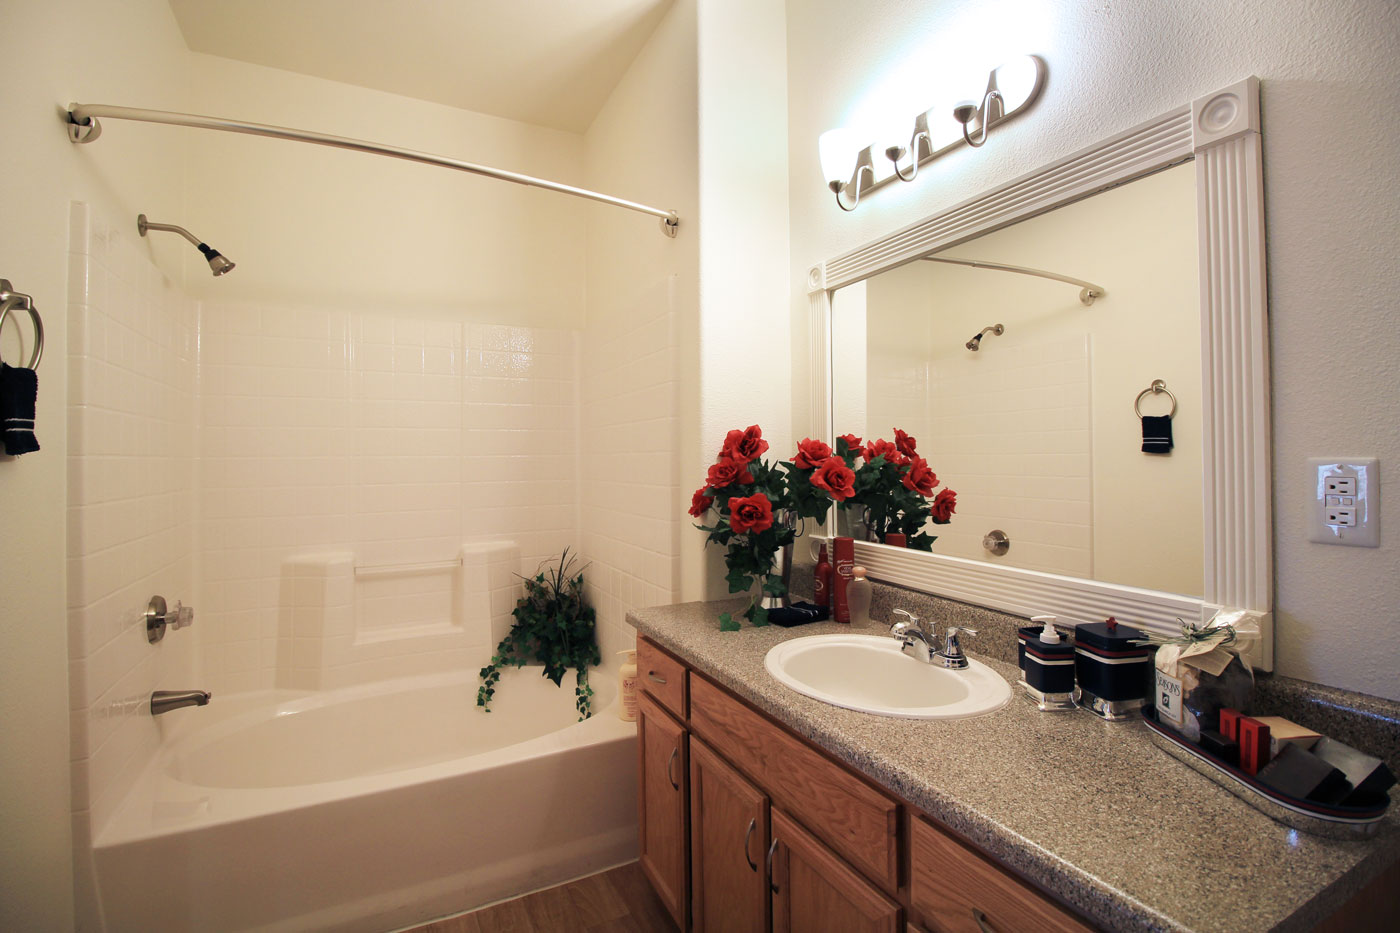 Full bathroom with floral decor.